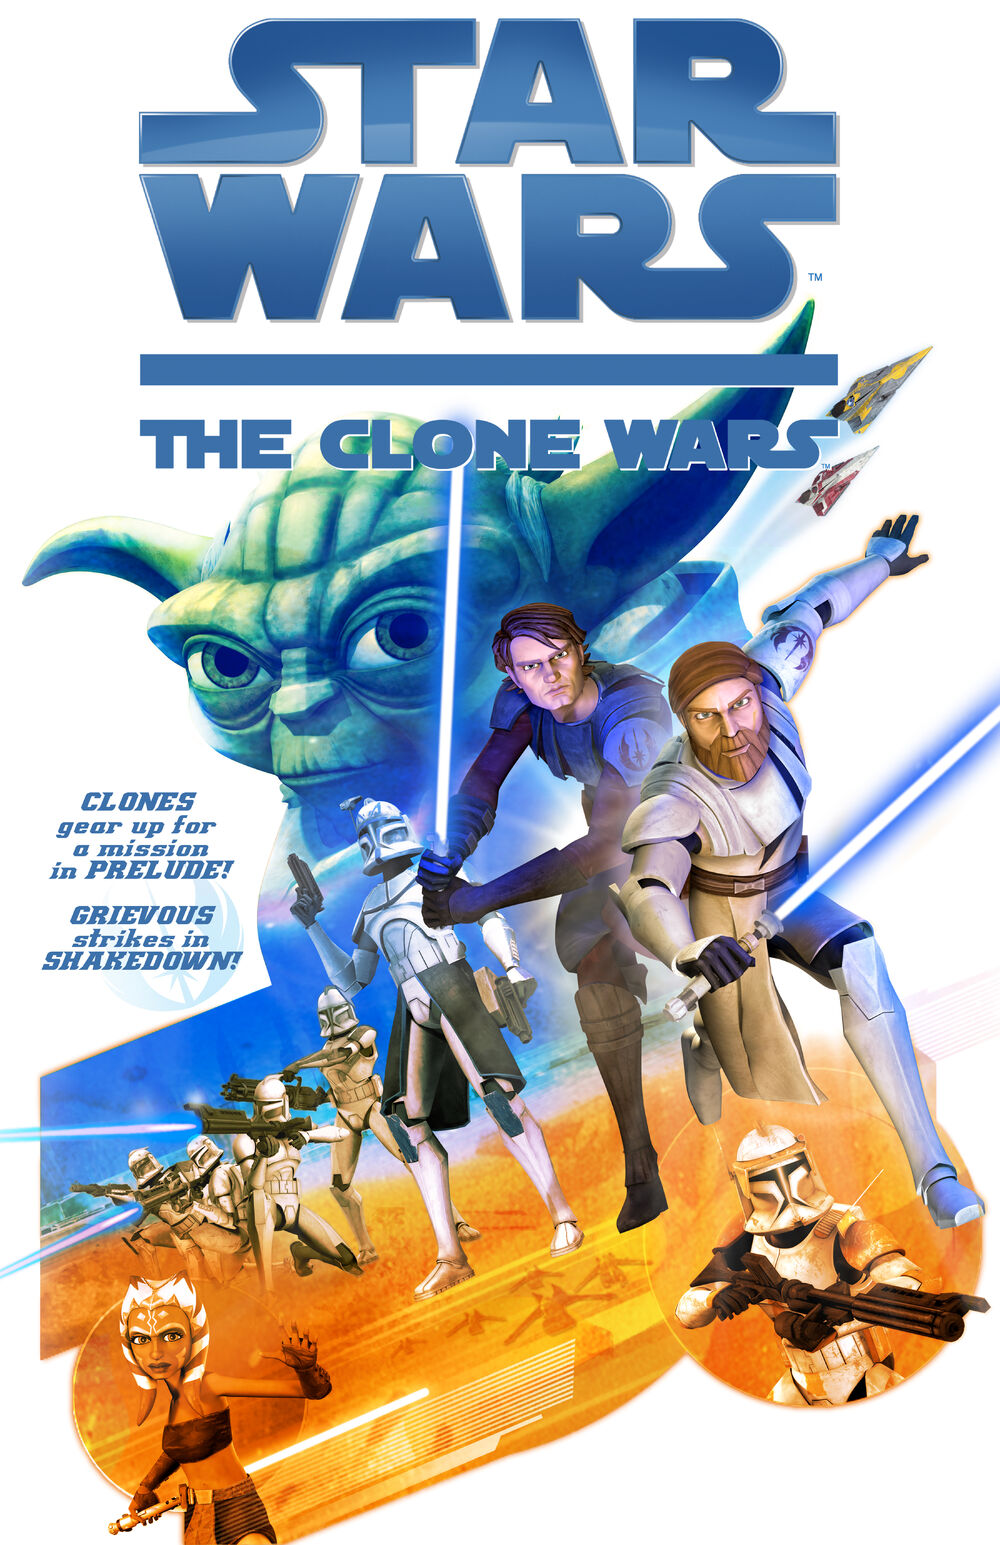 Star Wars The Clone Wars: Shakedown